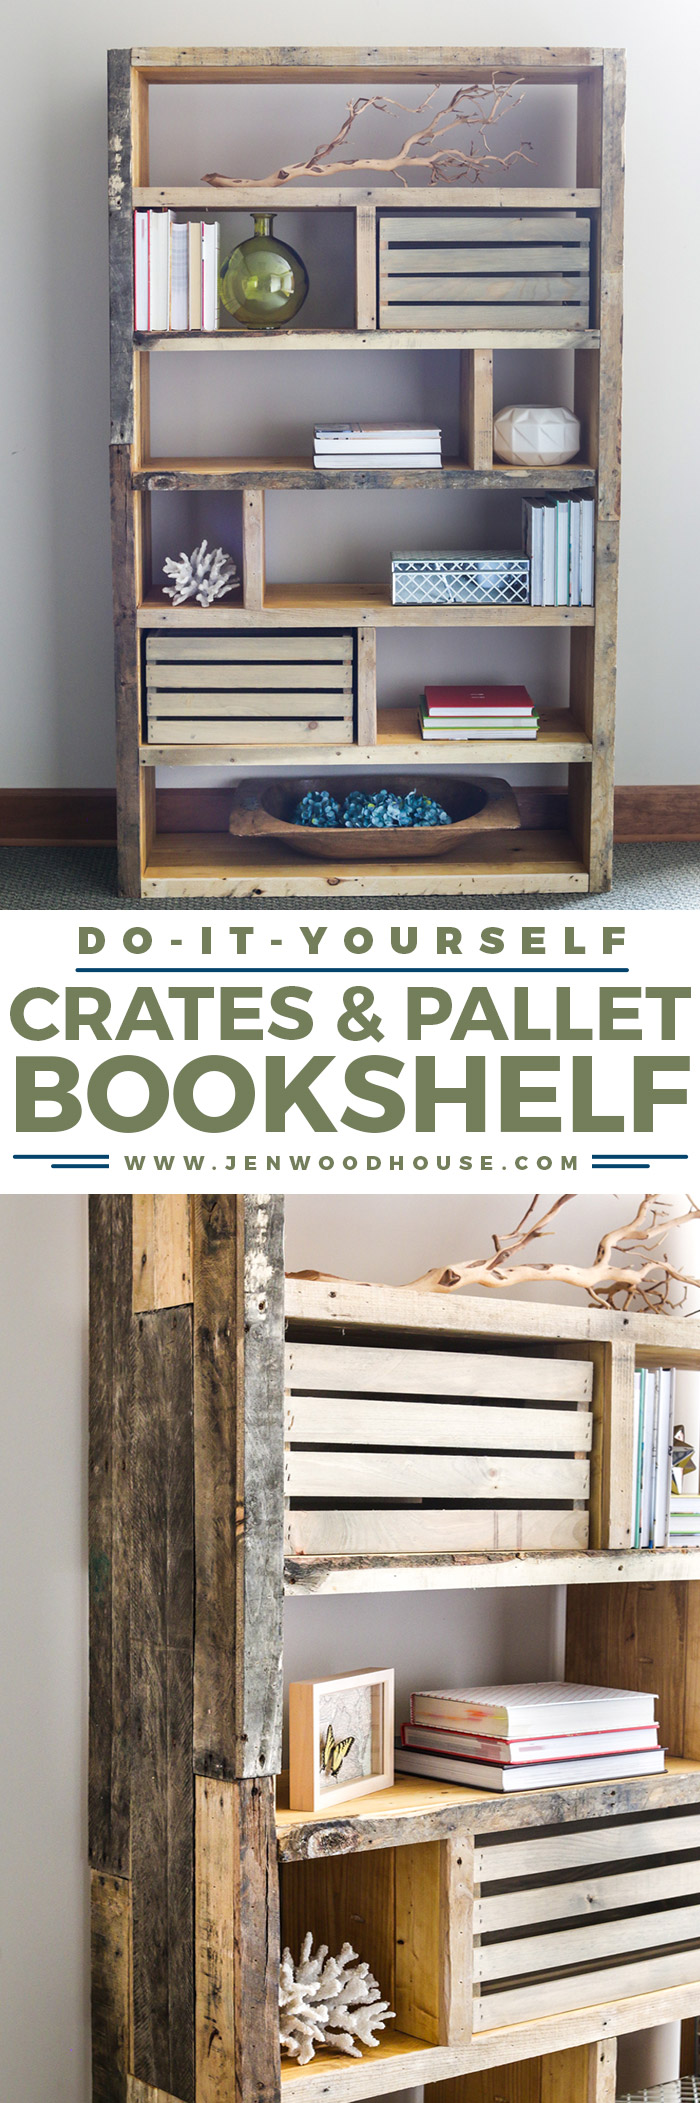 9. Bookshelf from Reclaimed Wood via Simphome